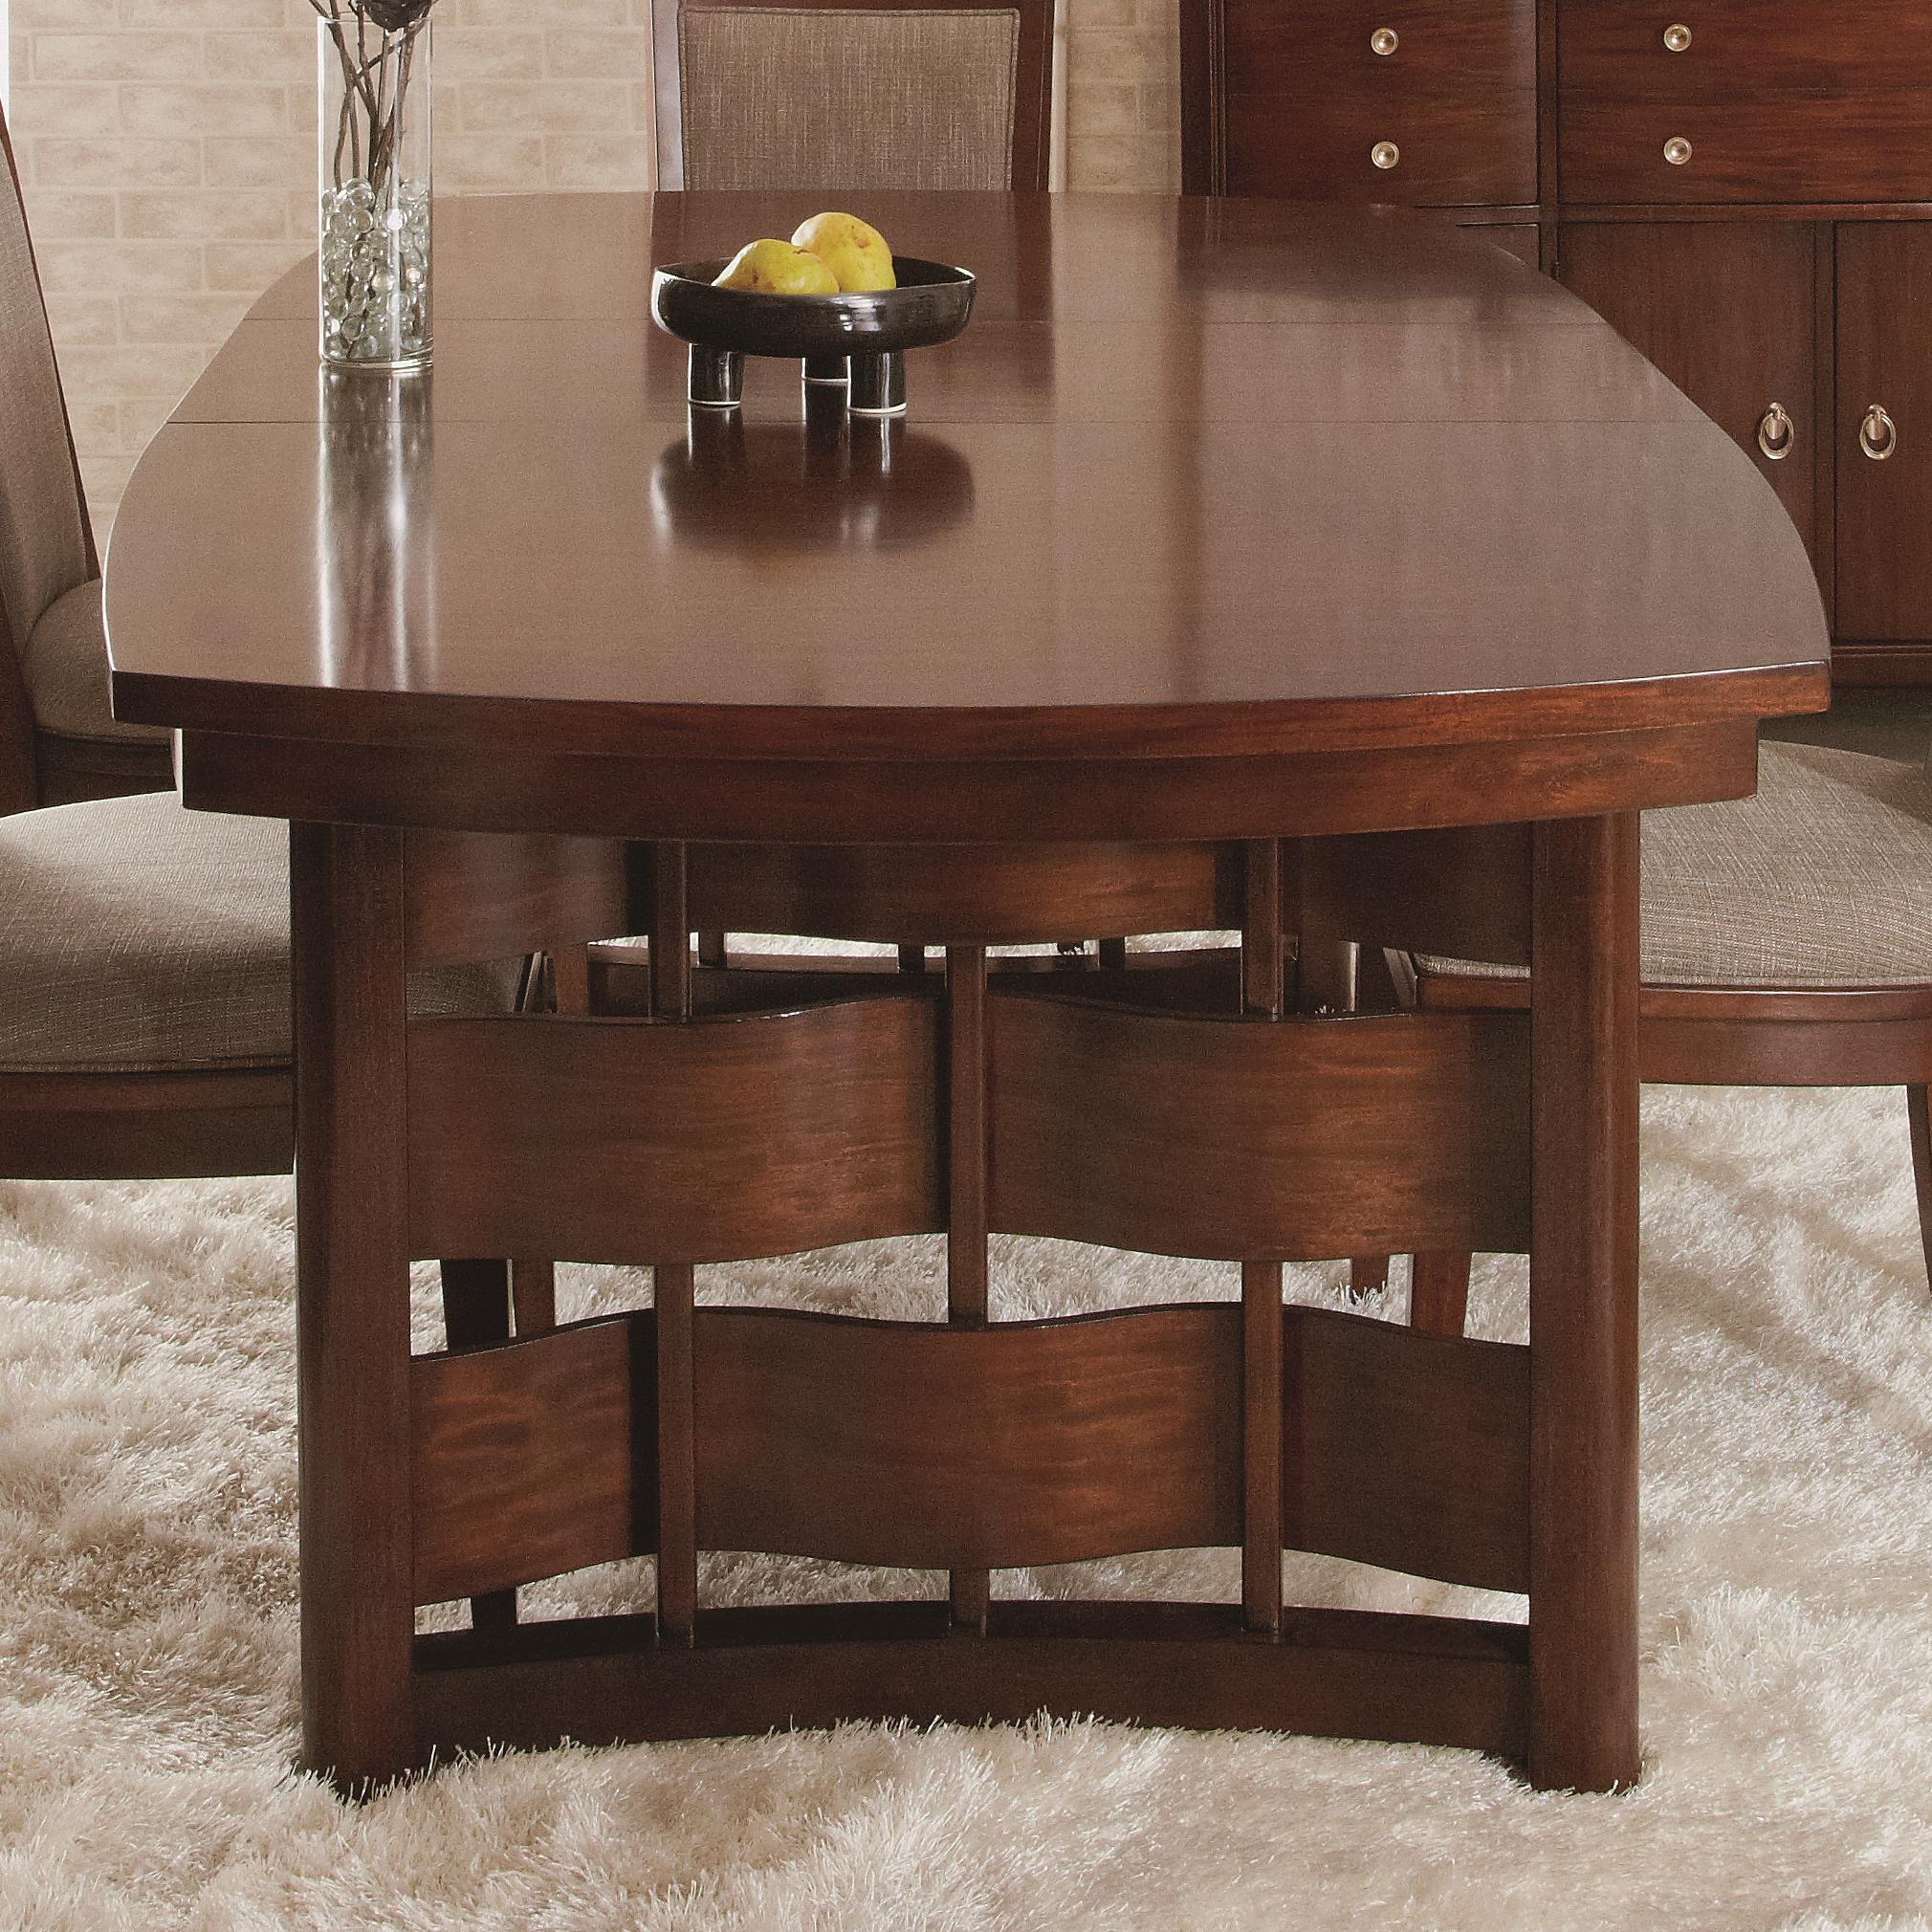 Morris Home Furnishings Augusta Augusta Dining Table - Item Number: 697-406